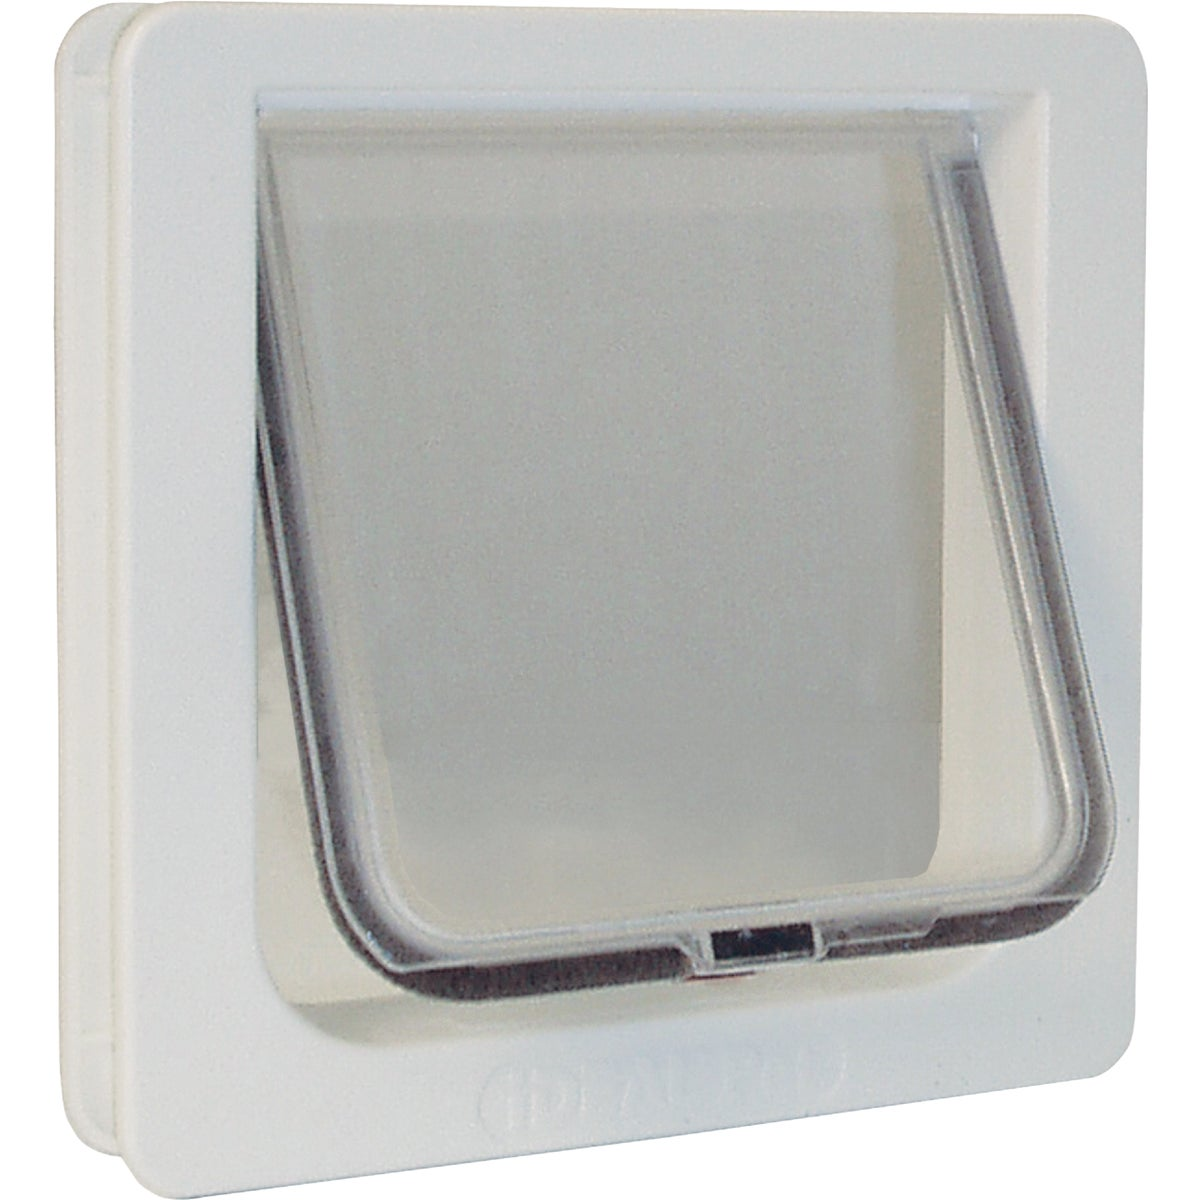 CAT FLAP 4-WAY LOCKING - SPF by Ideal Pet Products